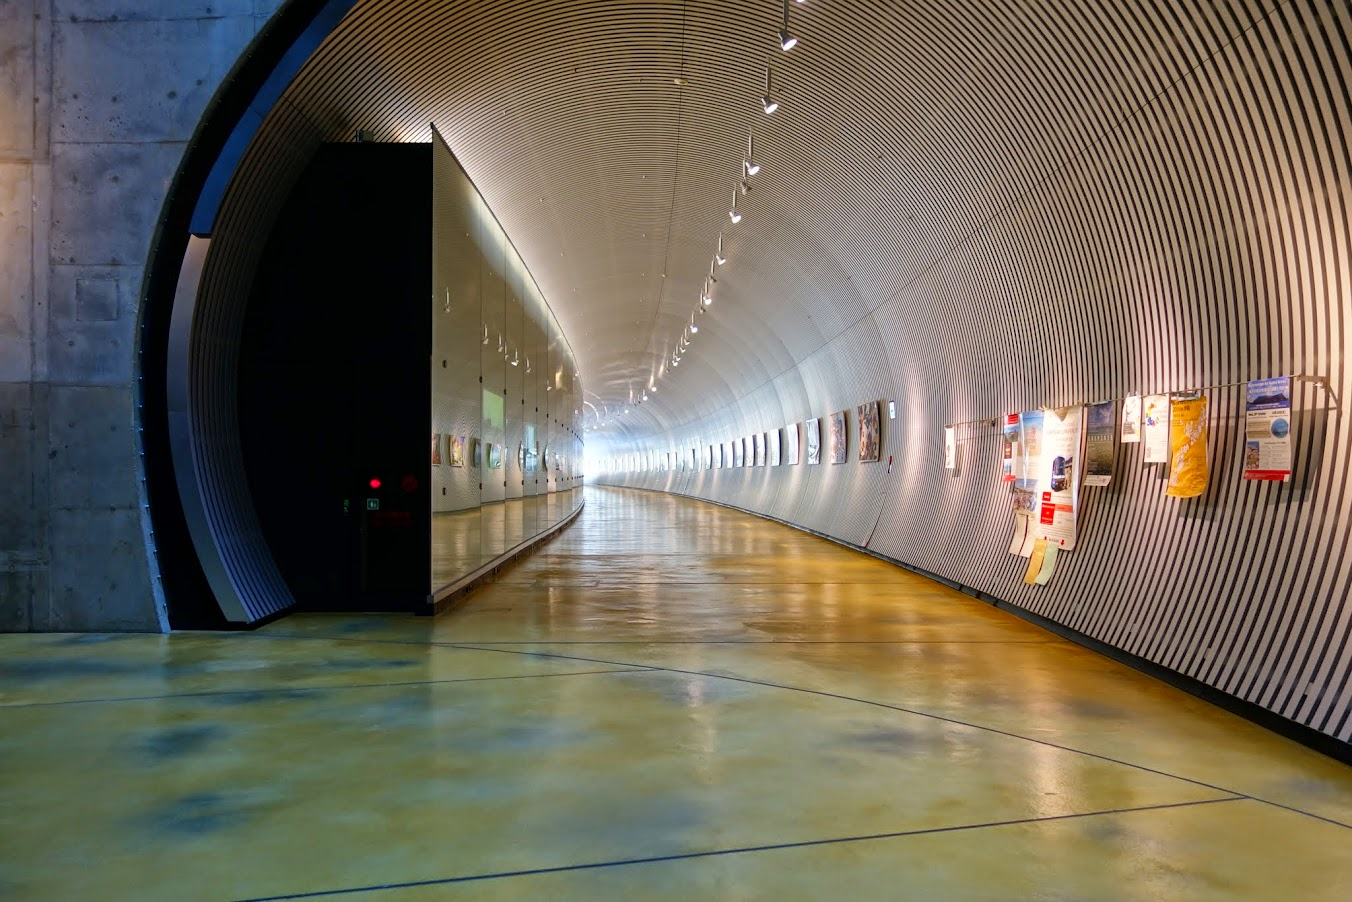 The underground walkway